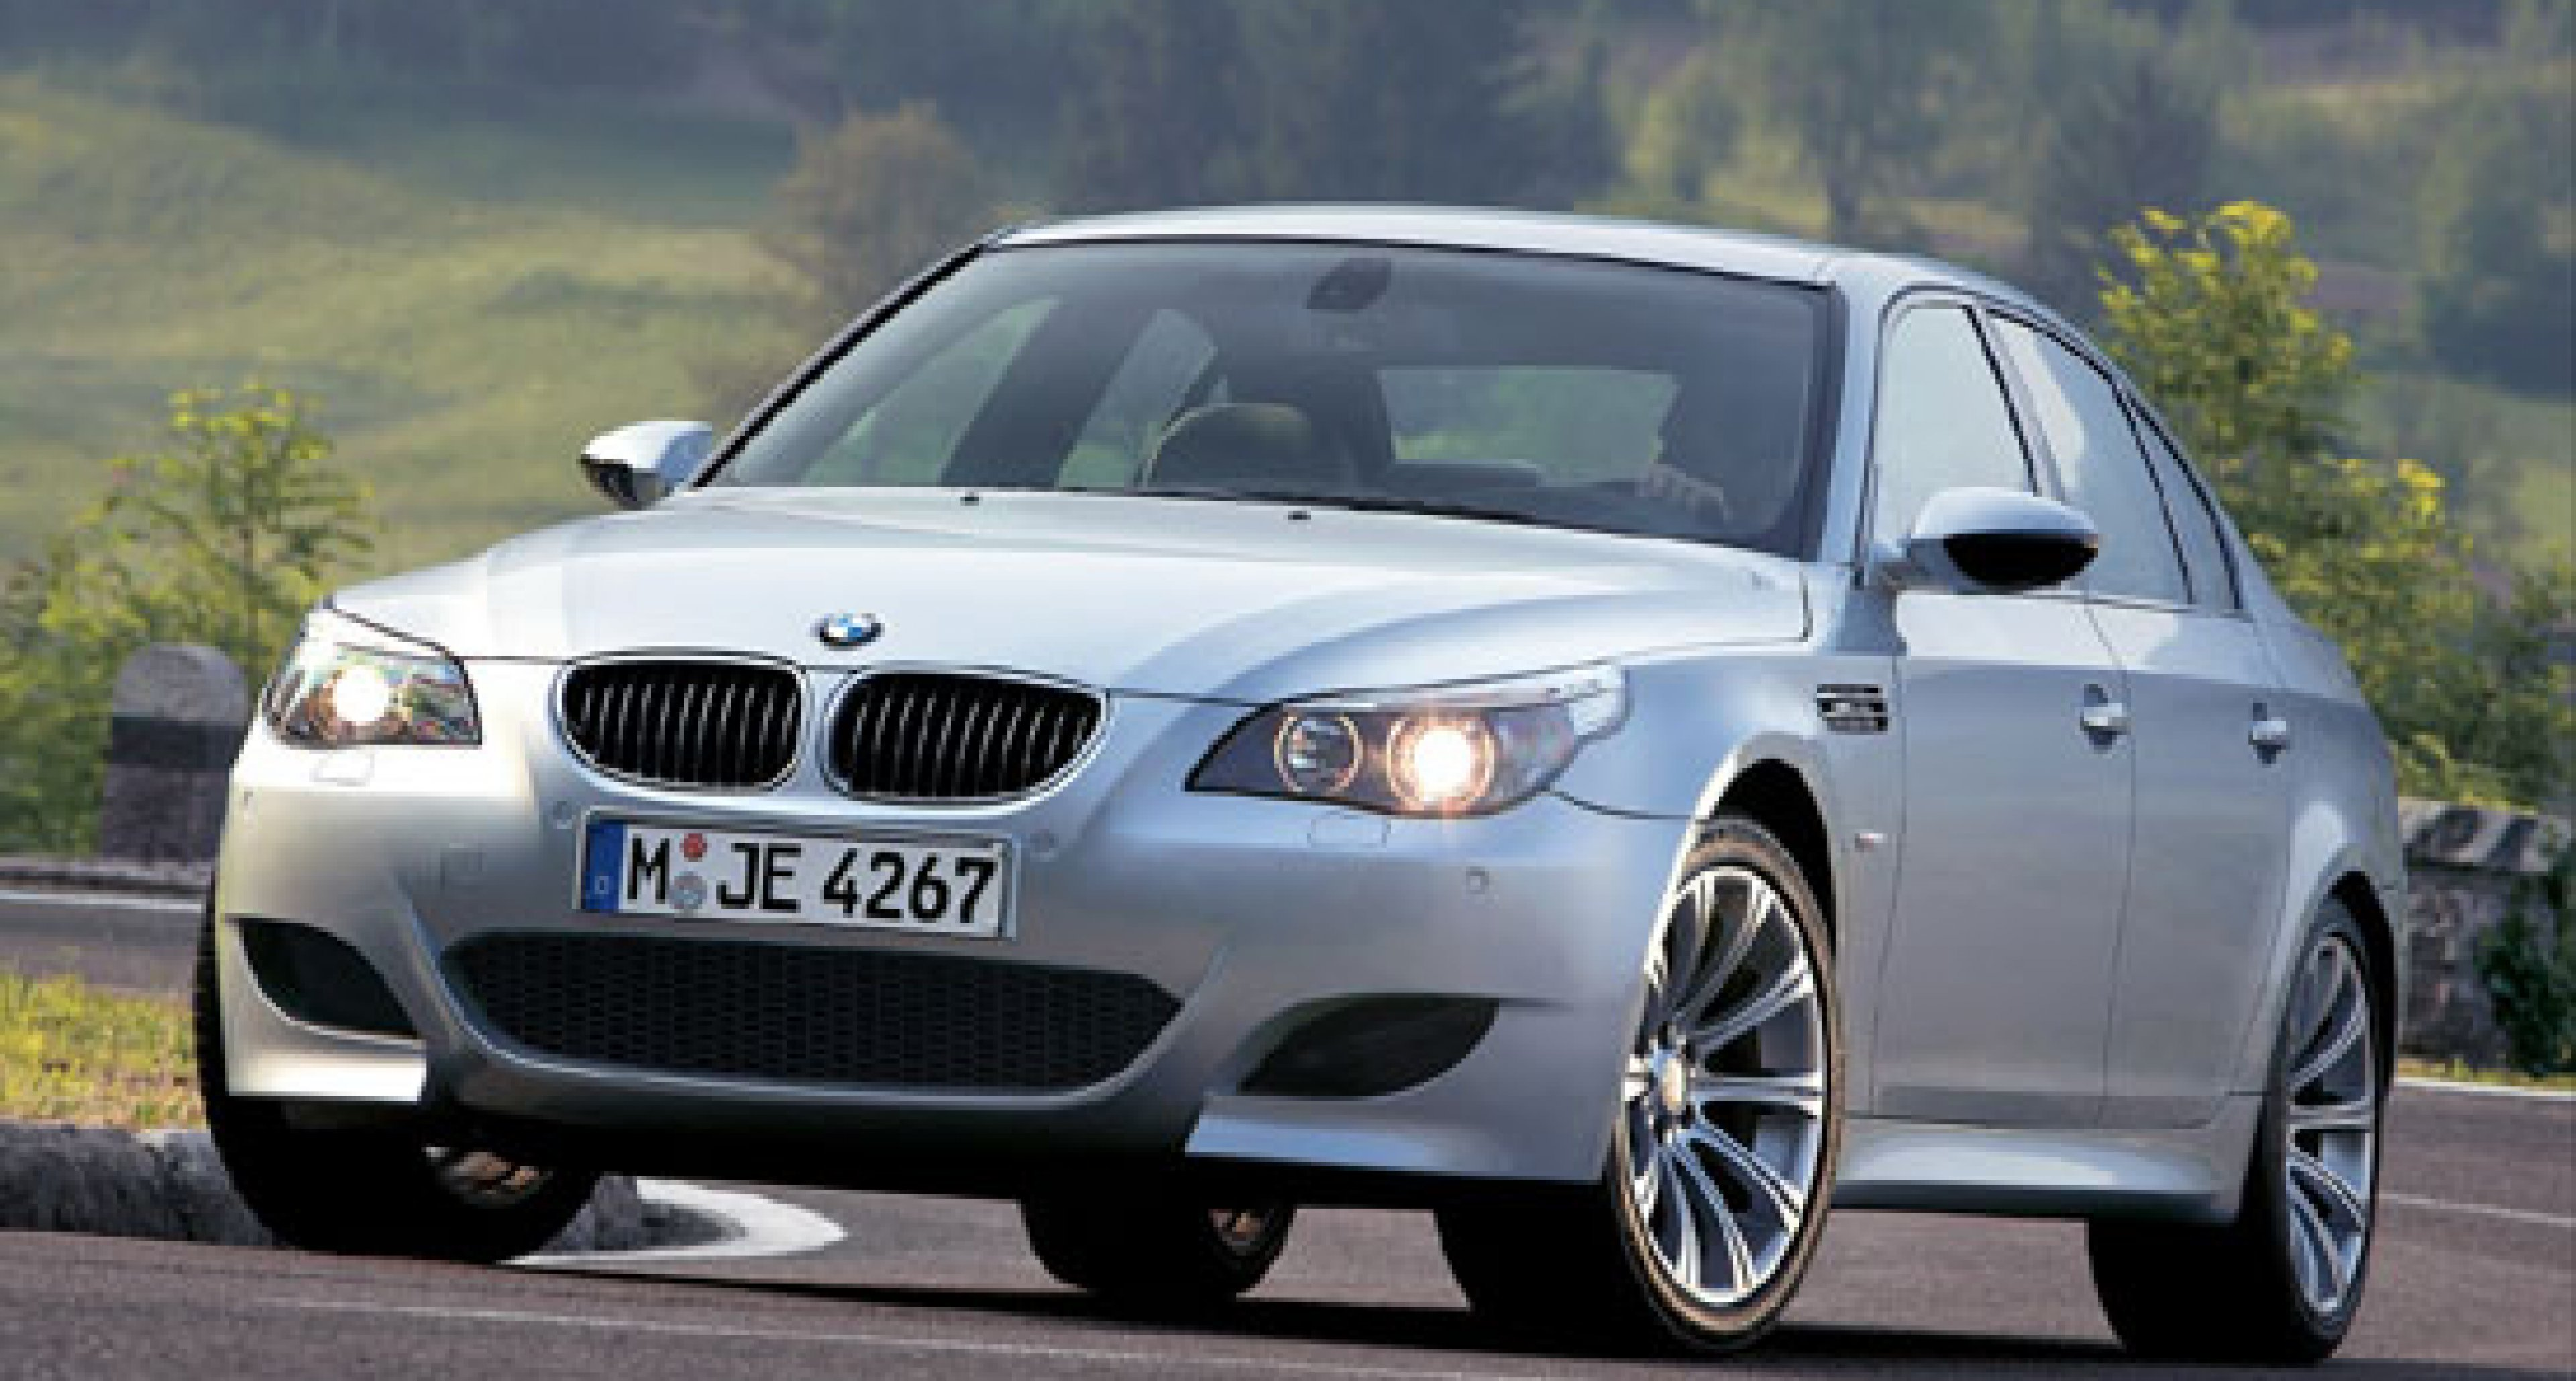 The new BMW M5 for 2005